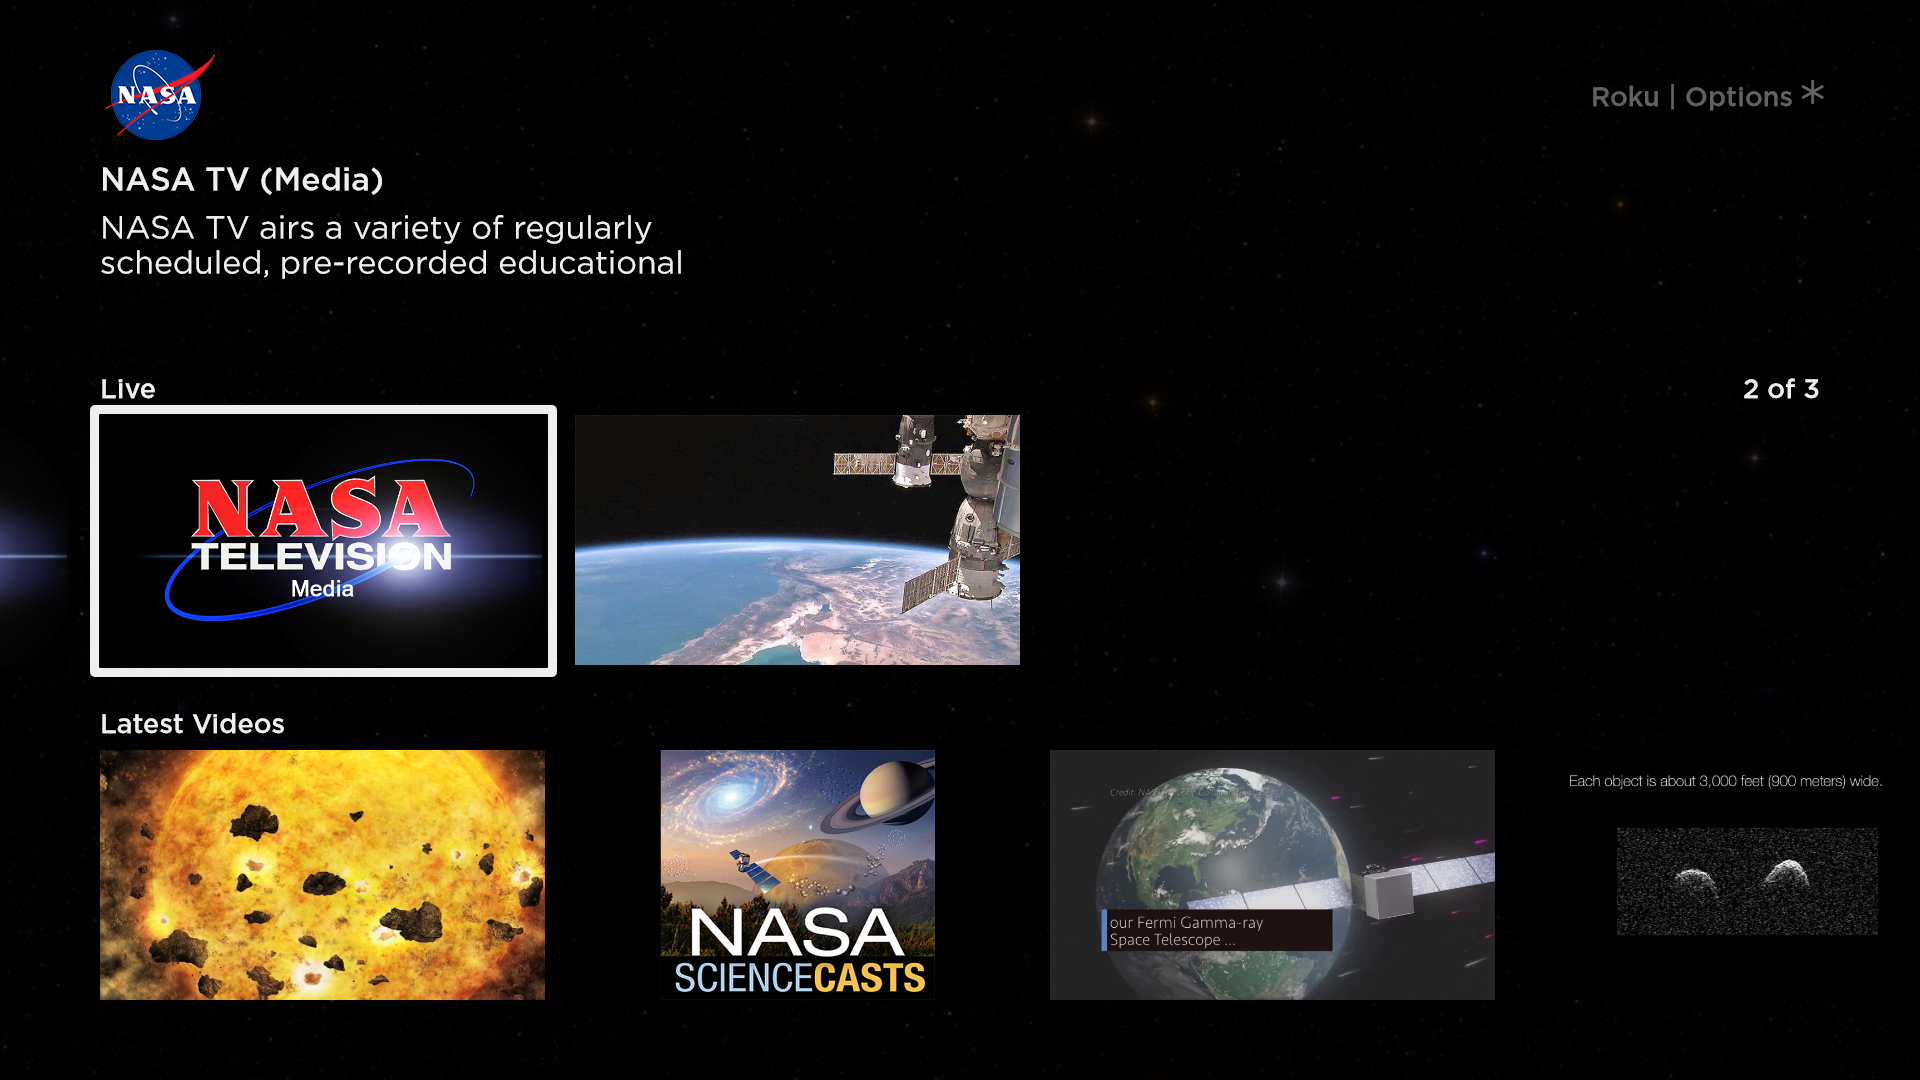 NASA App for Smartphones, Tablets and Digital Media Players